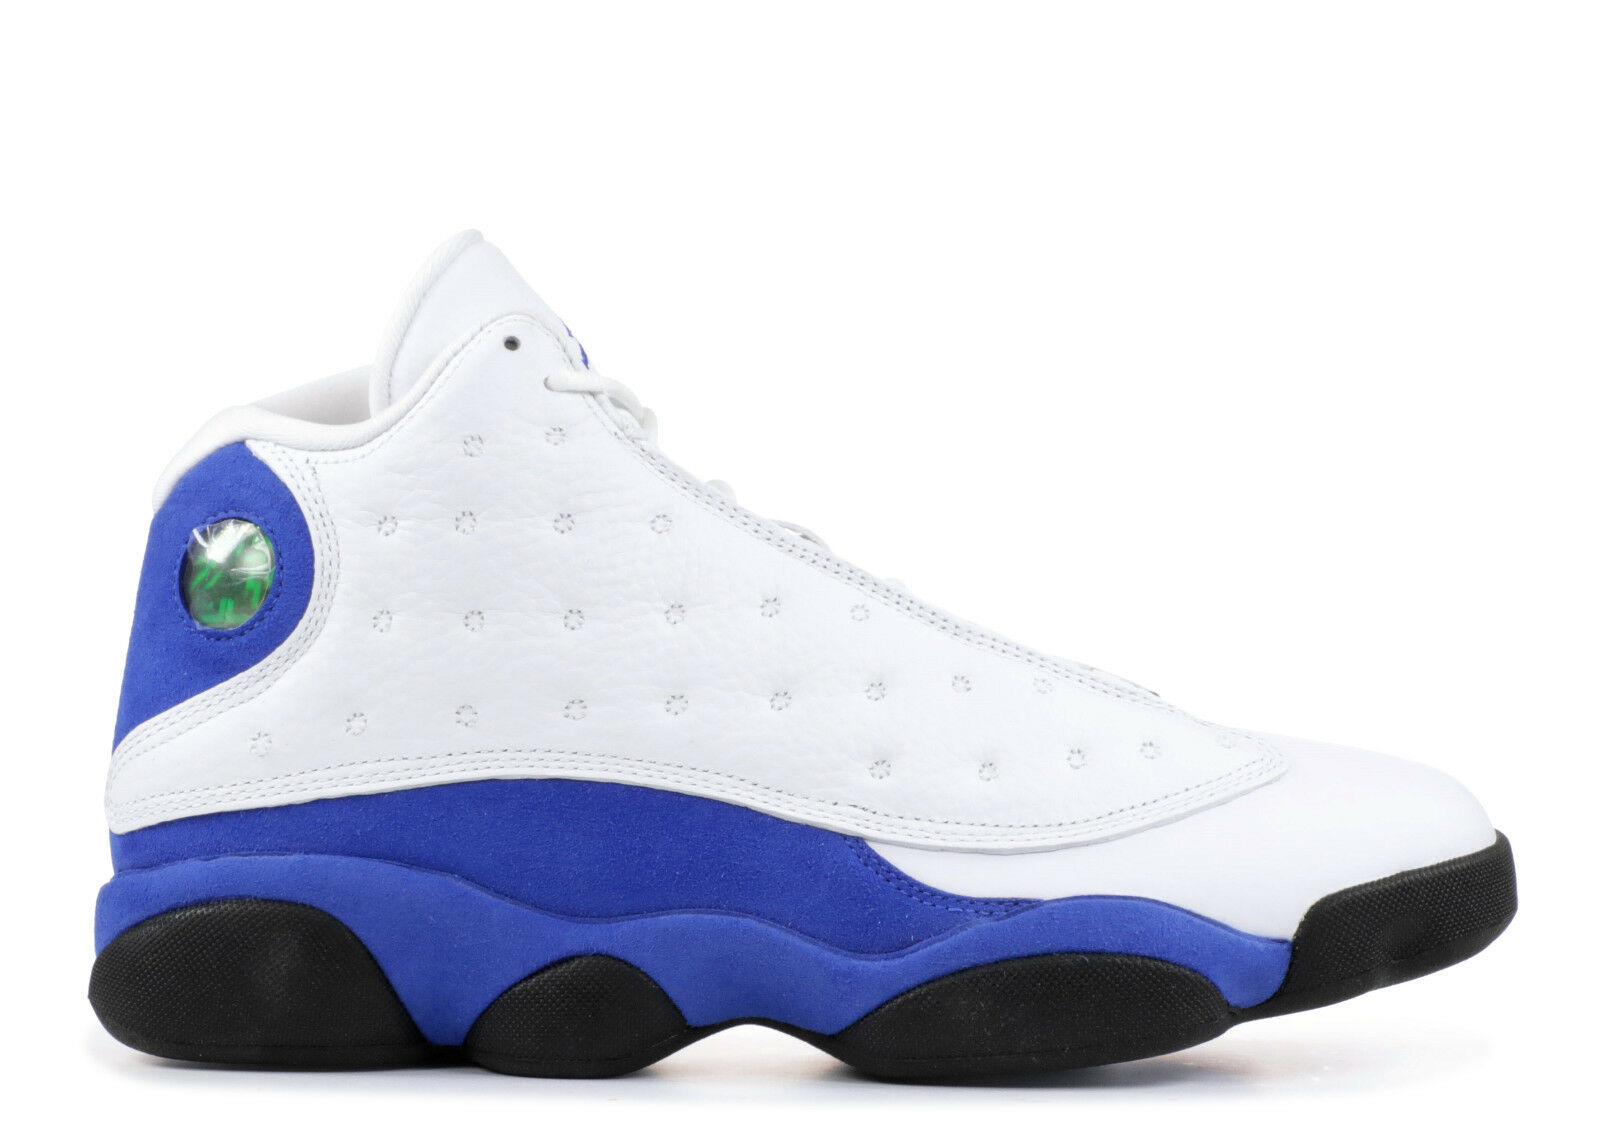 Men's Nike Air Jordan Retro 13  Hyper Royal Athletic Fashion Sneakers 414571 117